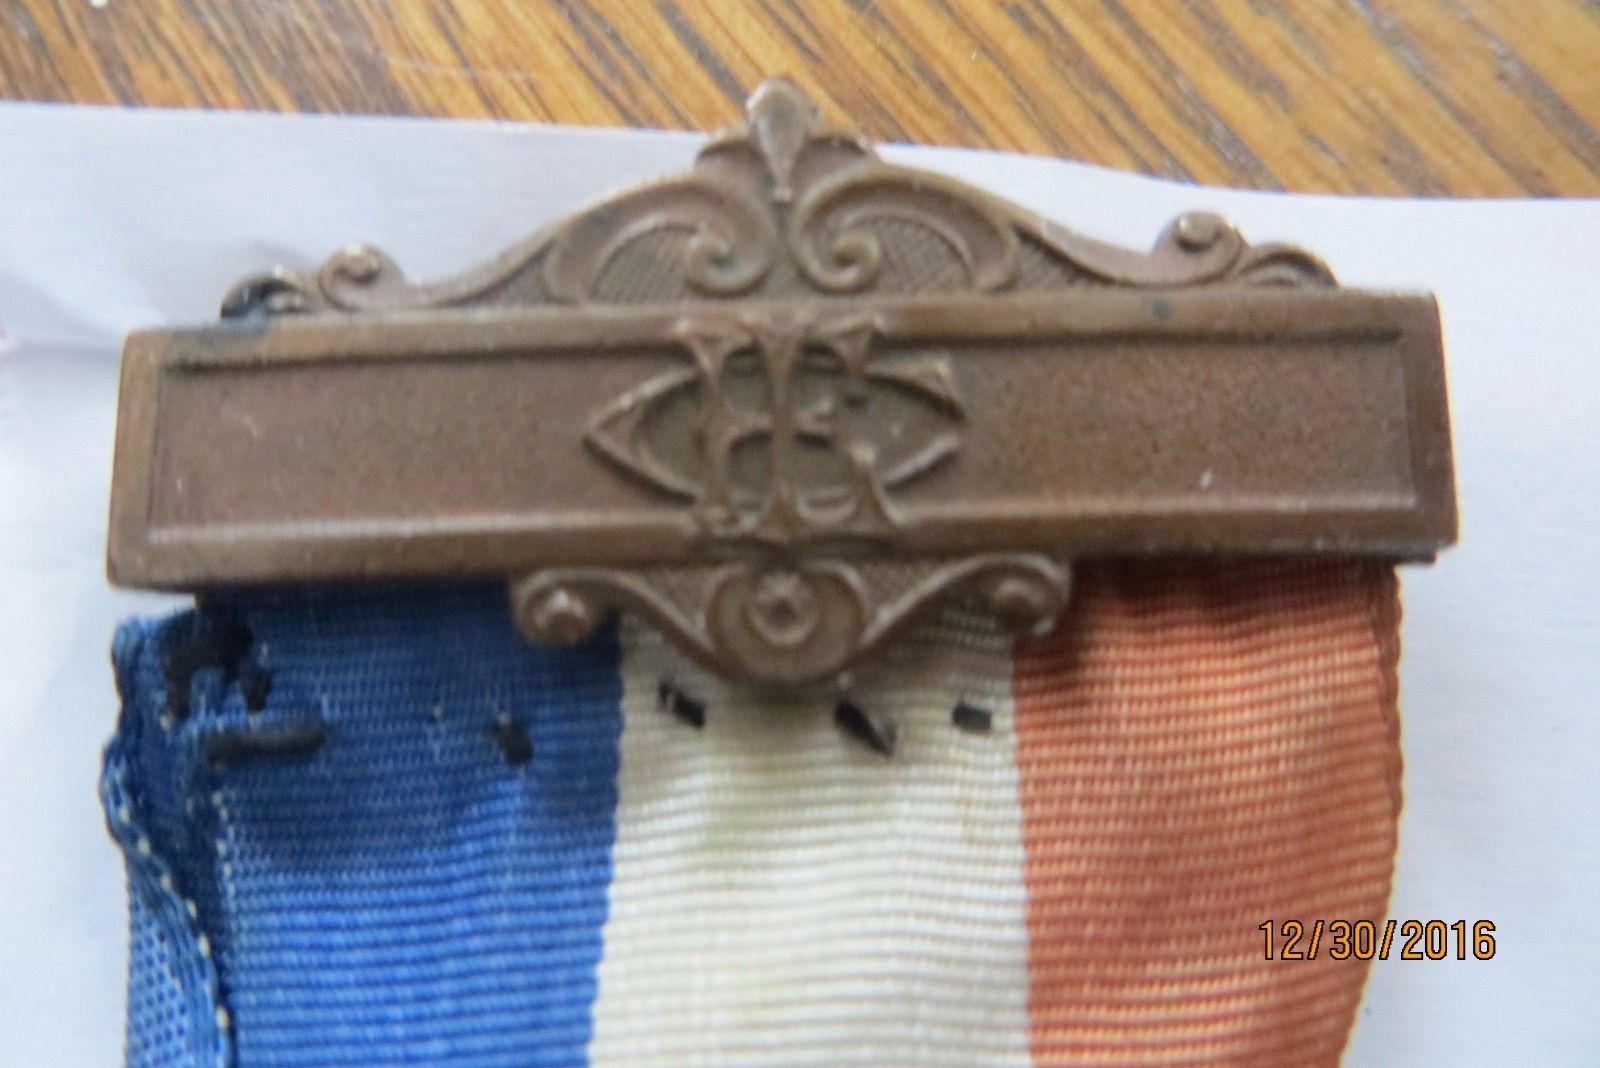 1883 historic antique dated Women's relief corps medal pin collectilbe